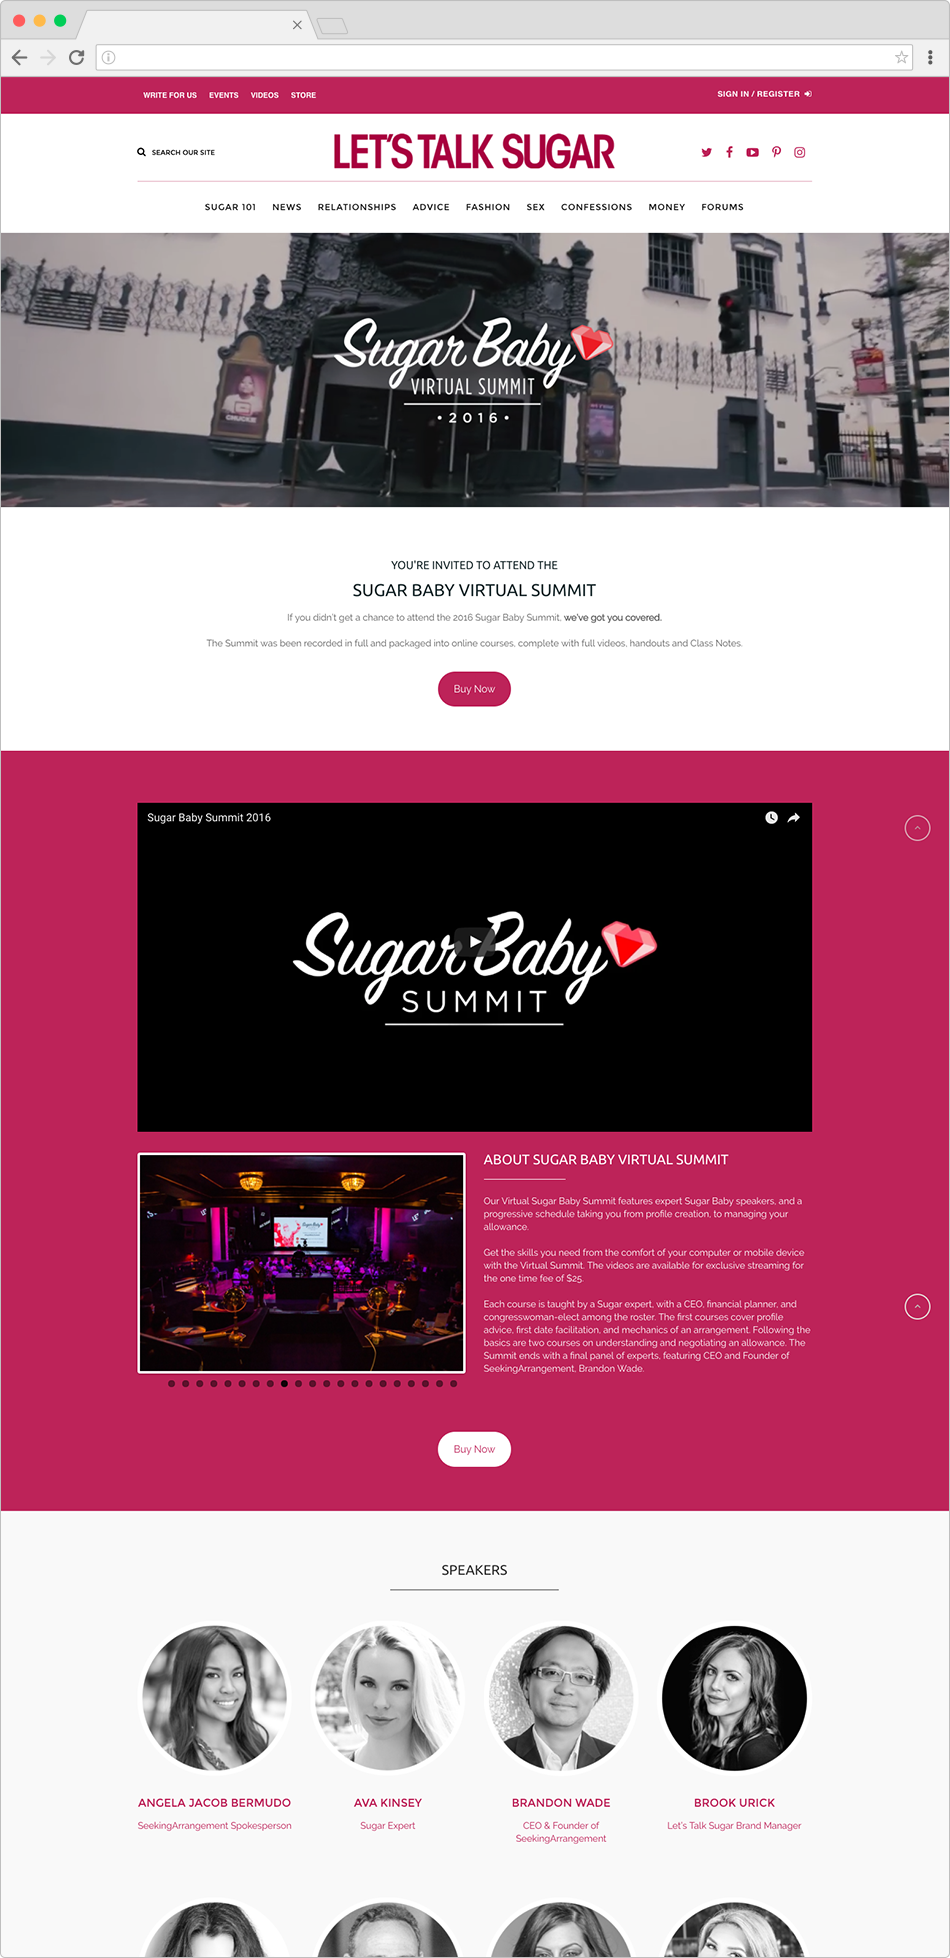 Sugar Baby Virtual Summit